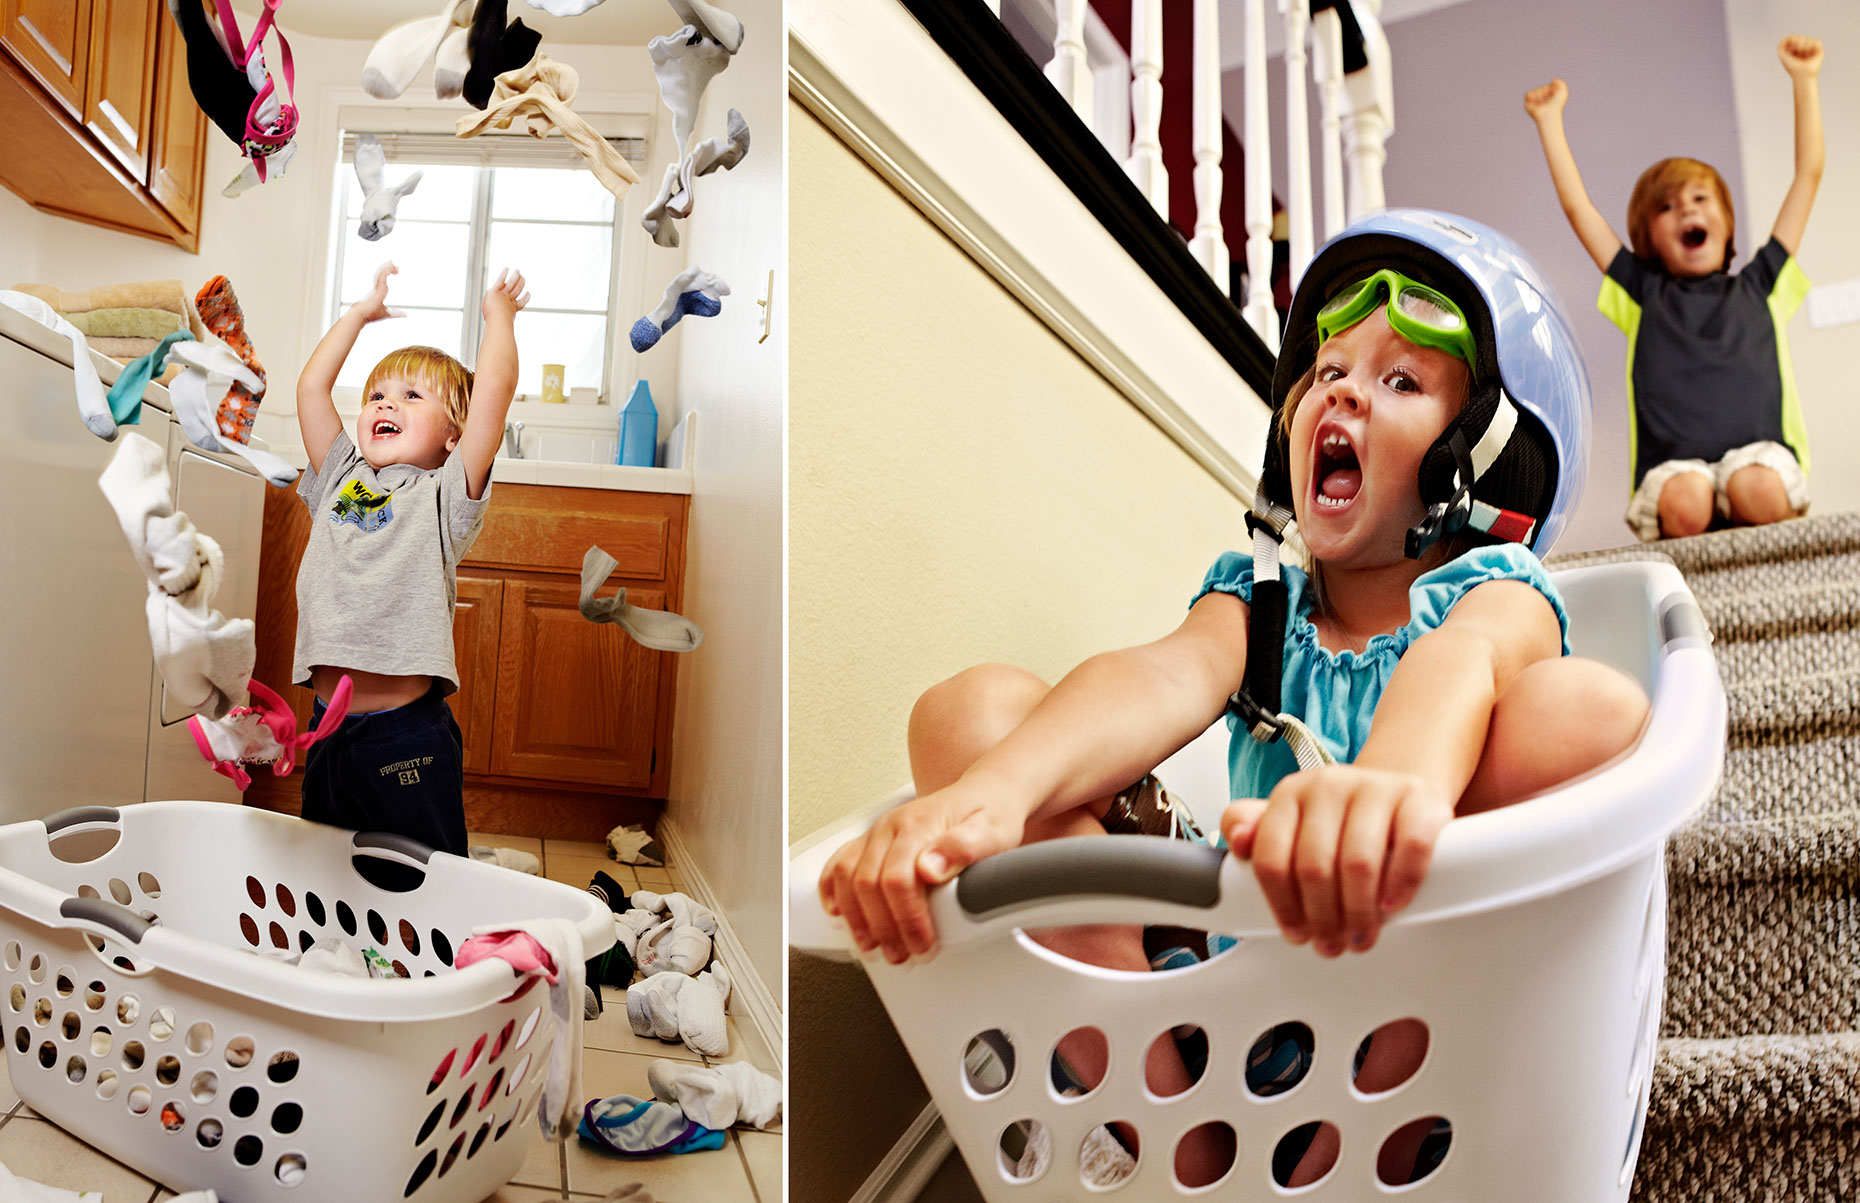 Photography_Children and Teens_Kids Laundry Games Sliding Down Stairs-Tony Garcia